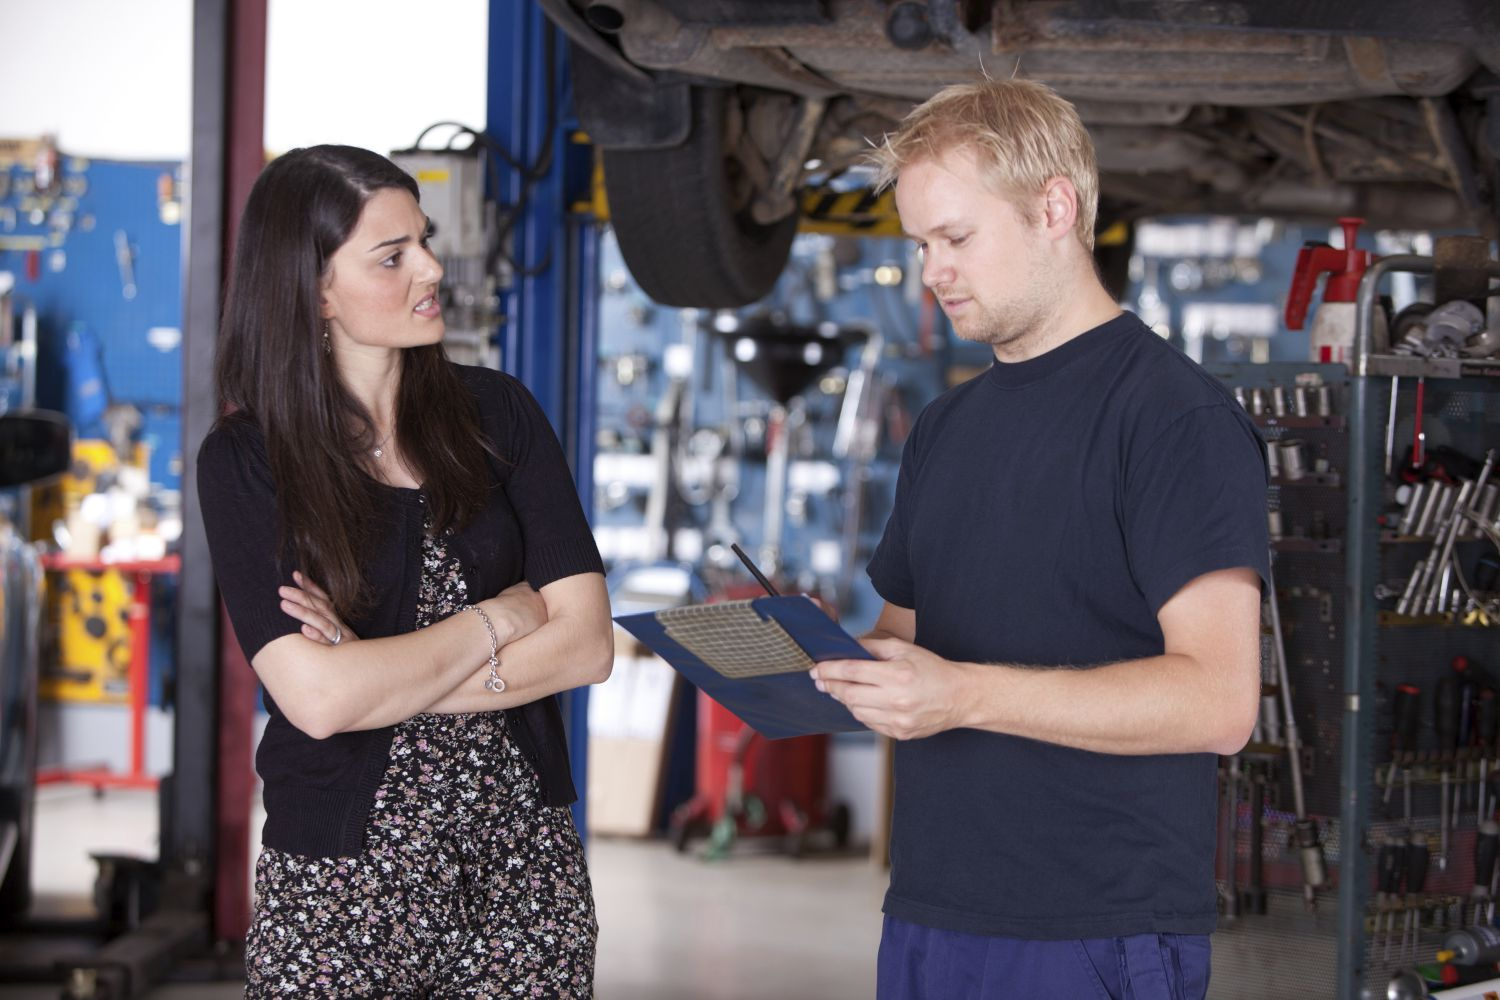 A mechanic answers questions from a client